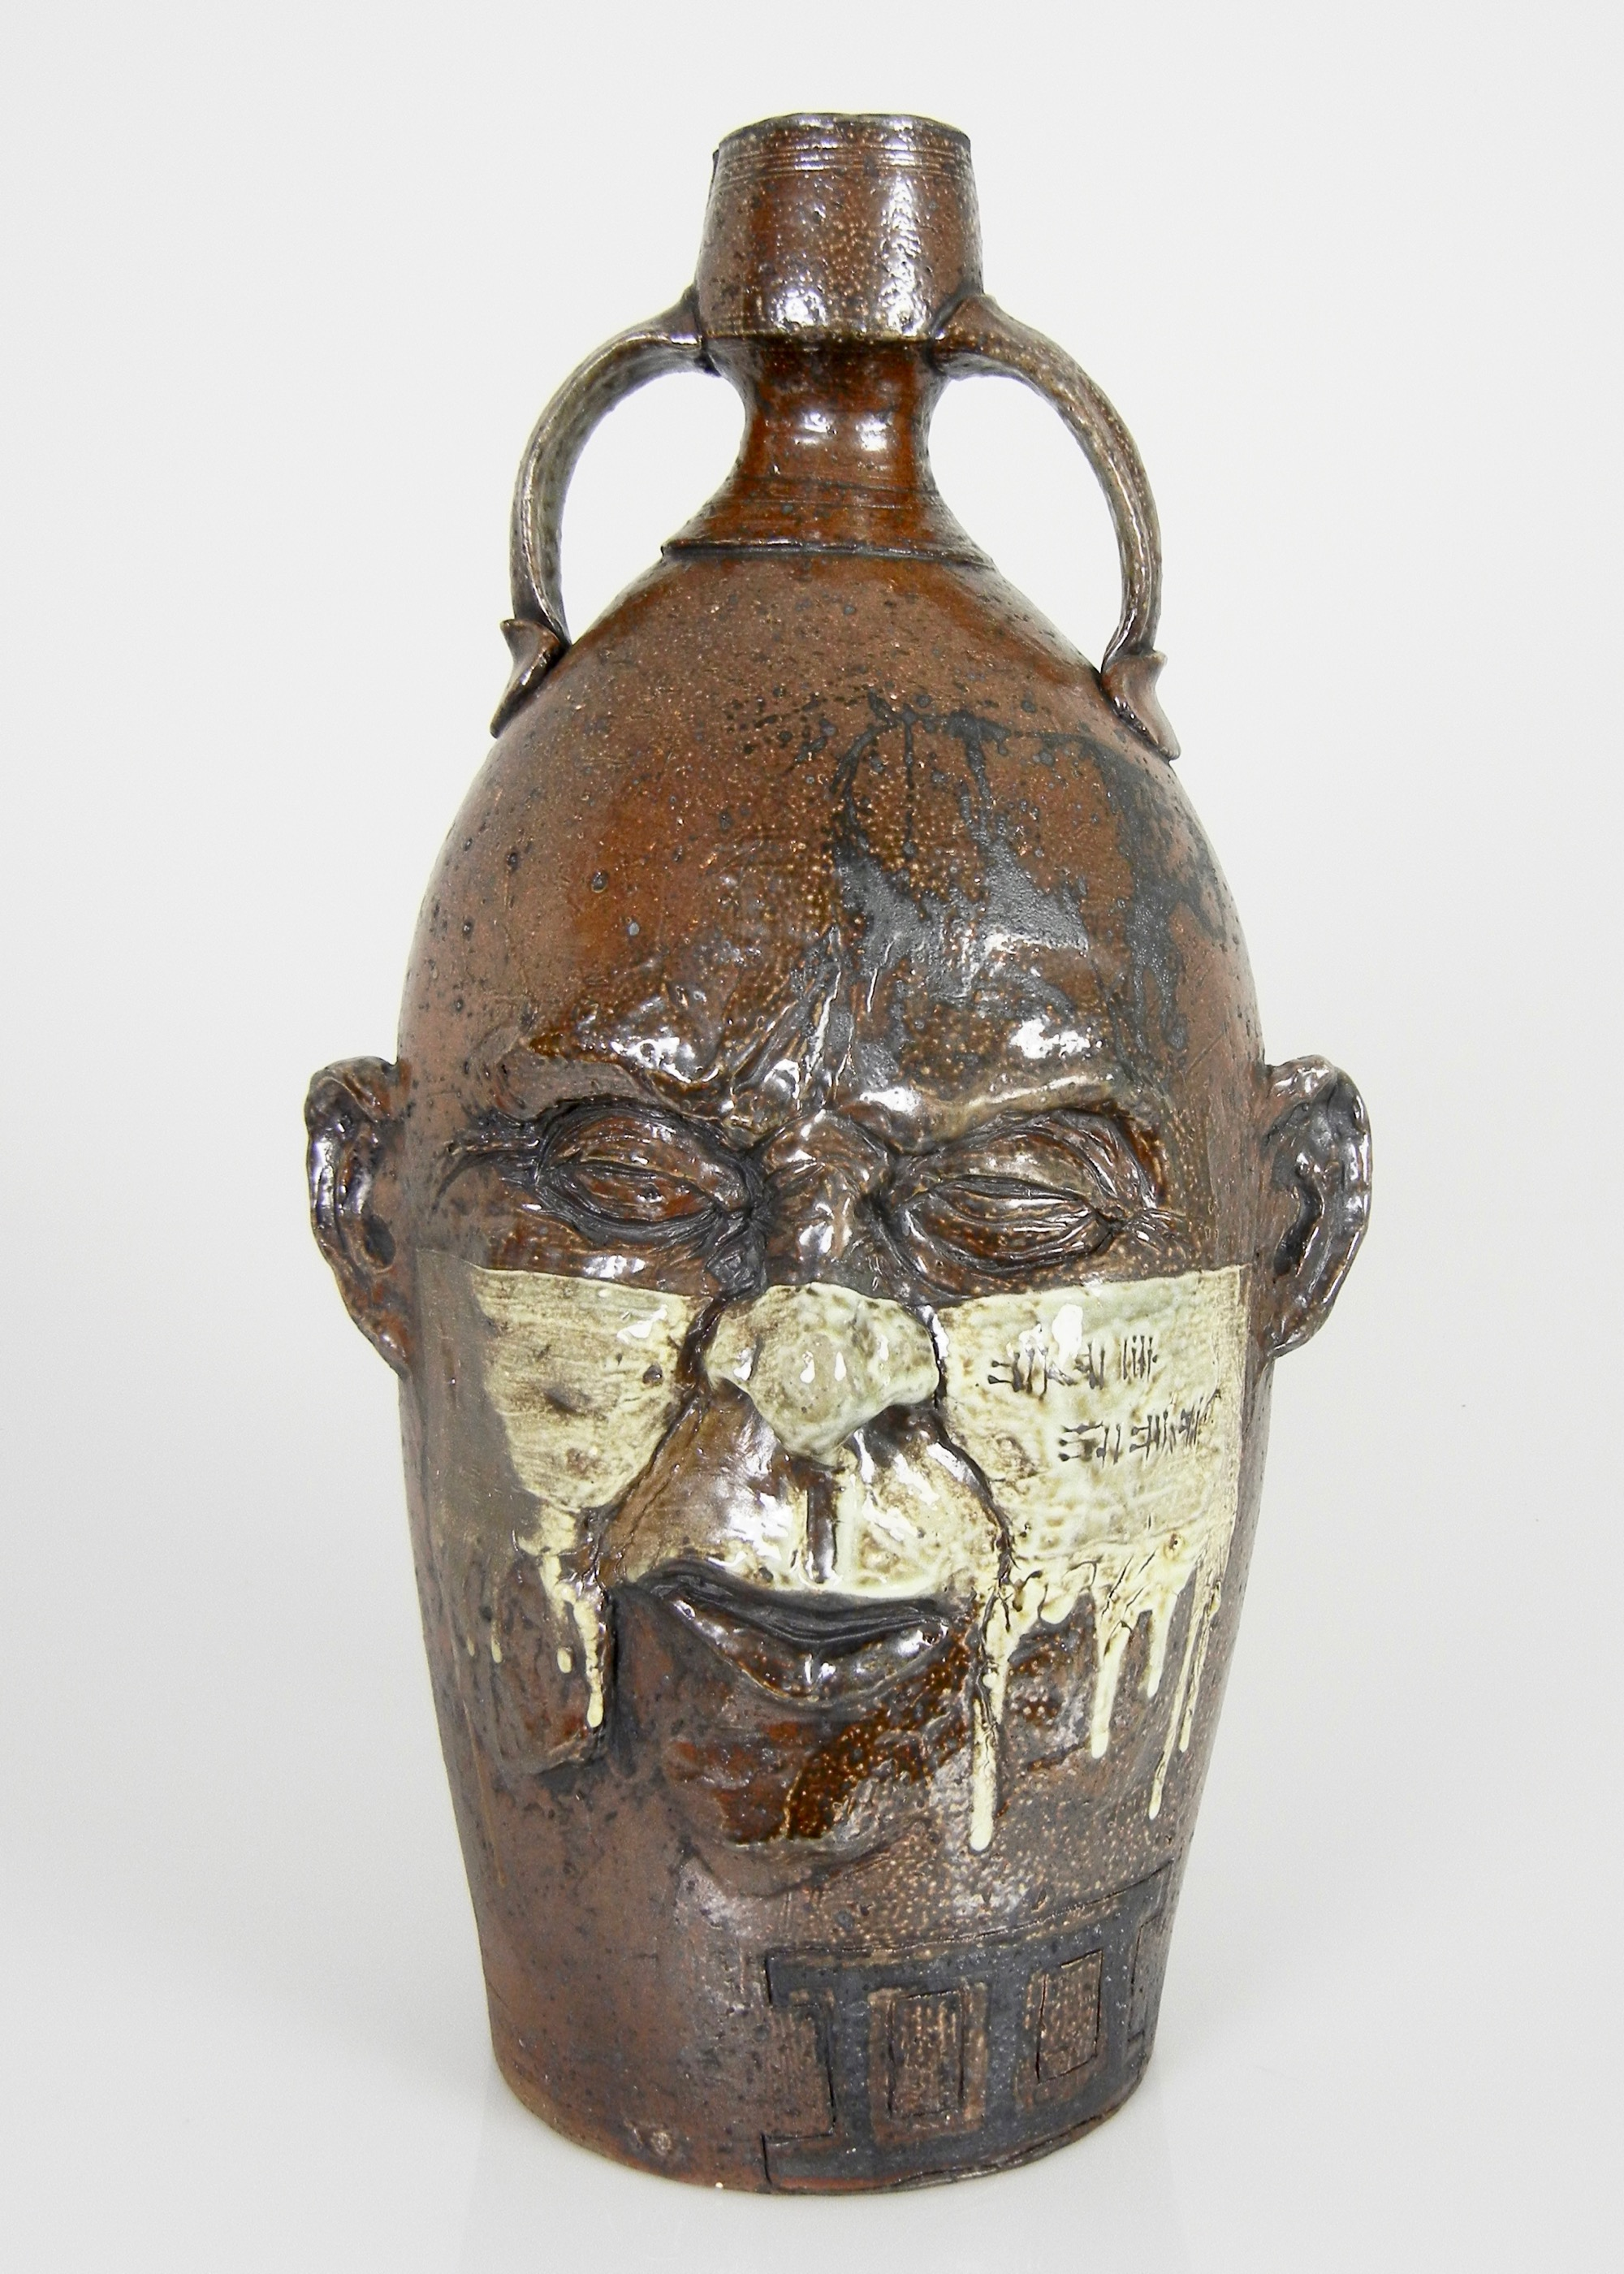 Disgusted Face Jug